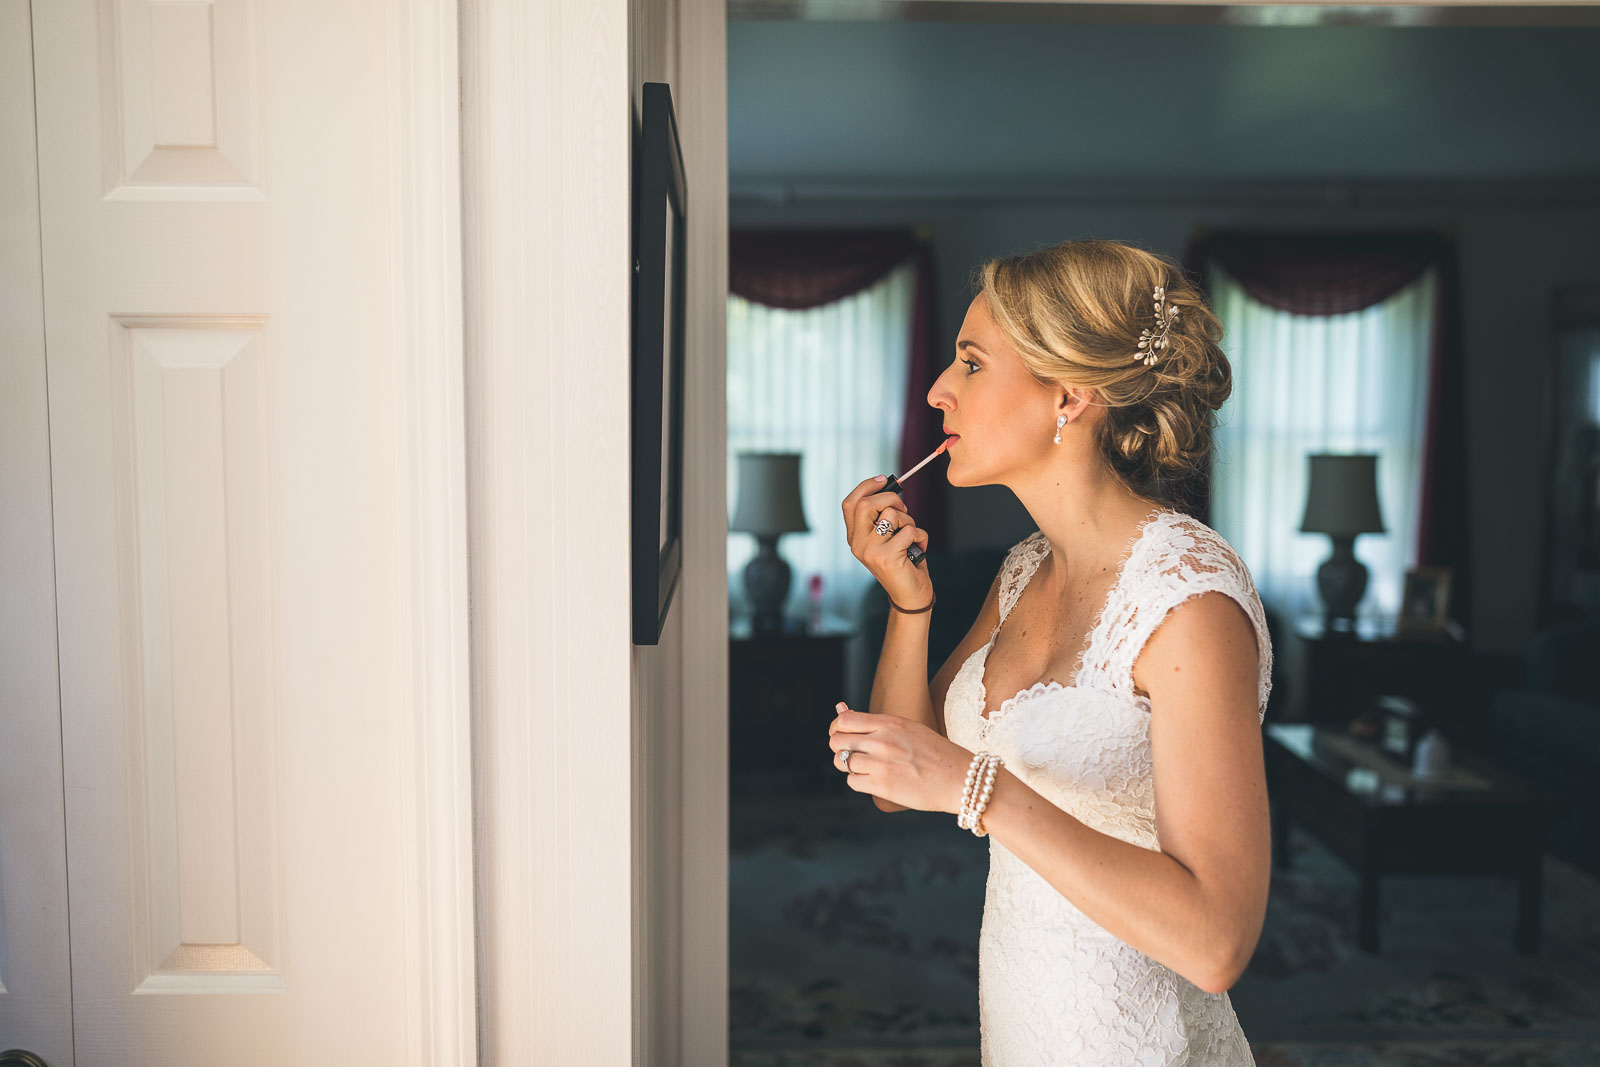 Bride applies finishing touches